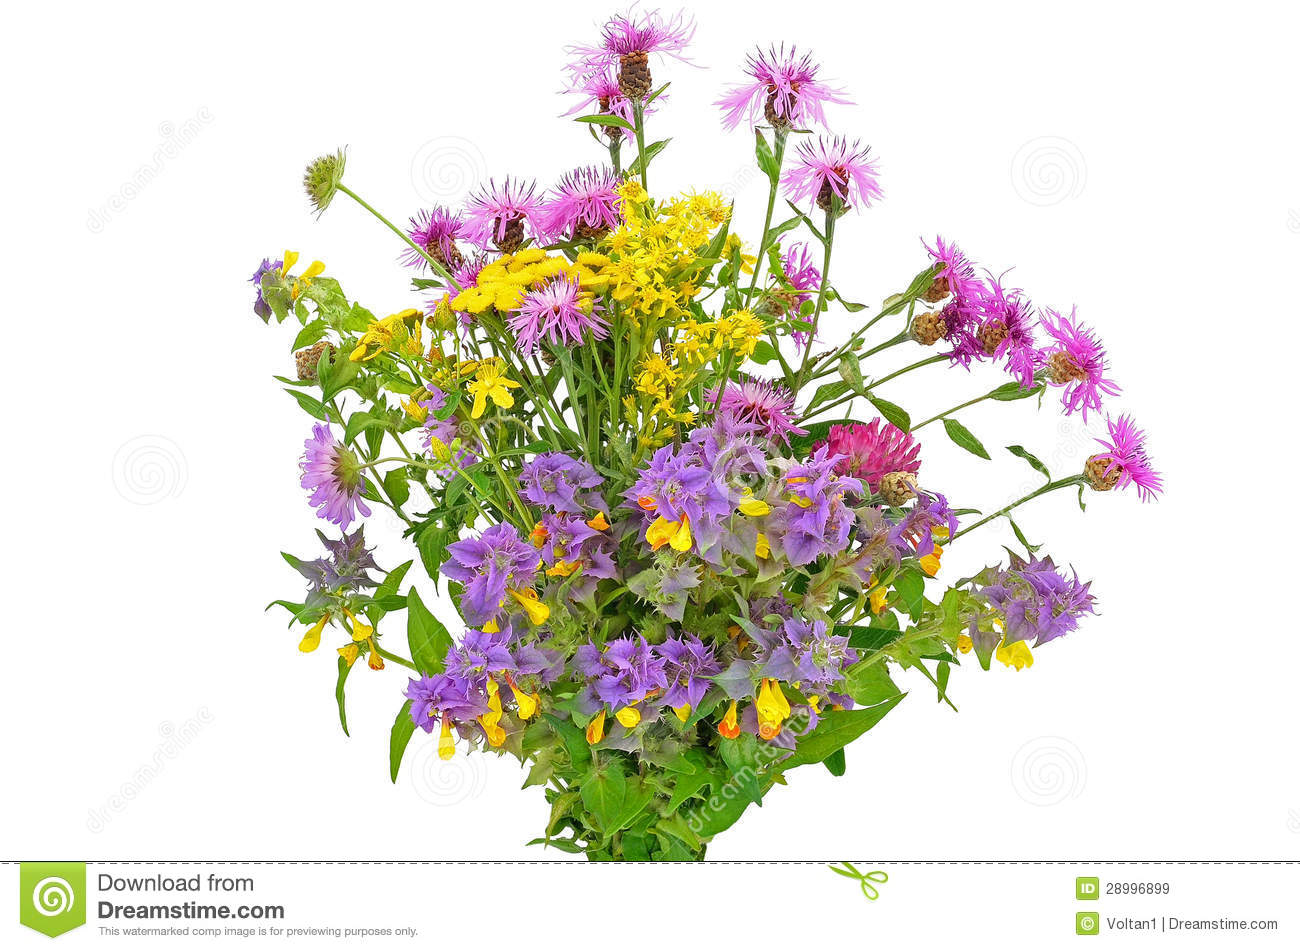 Wildflower clipart flower bouquet Bouquet Wildflowers Clipart Wildflowers Of